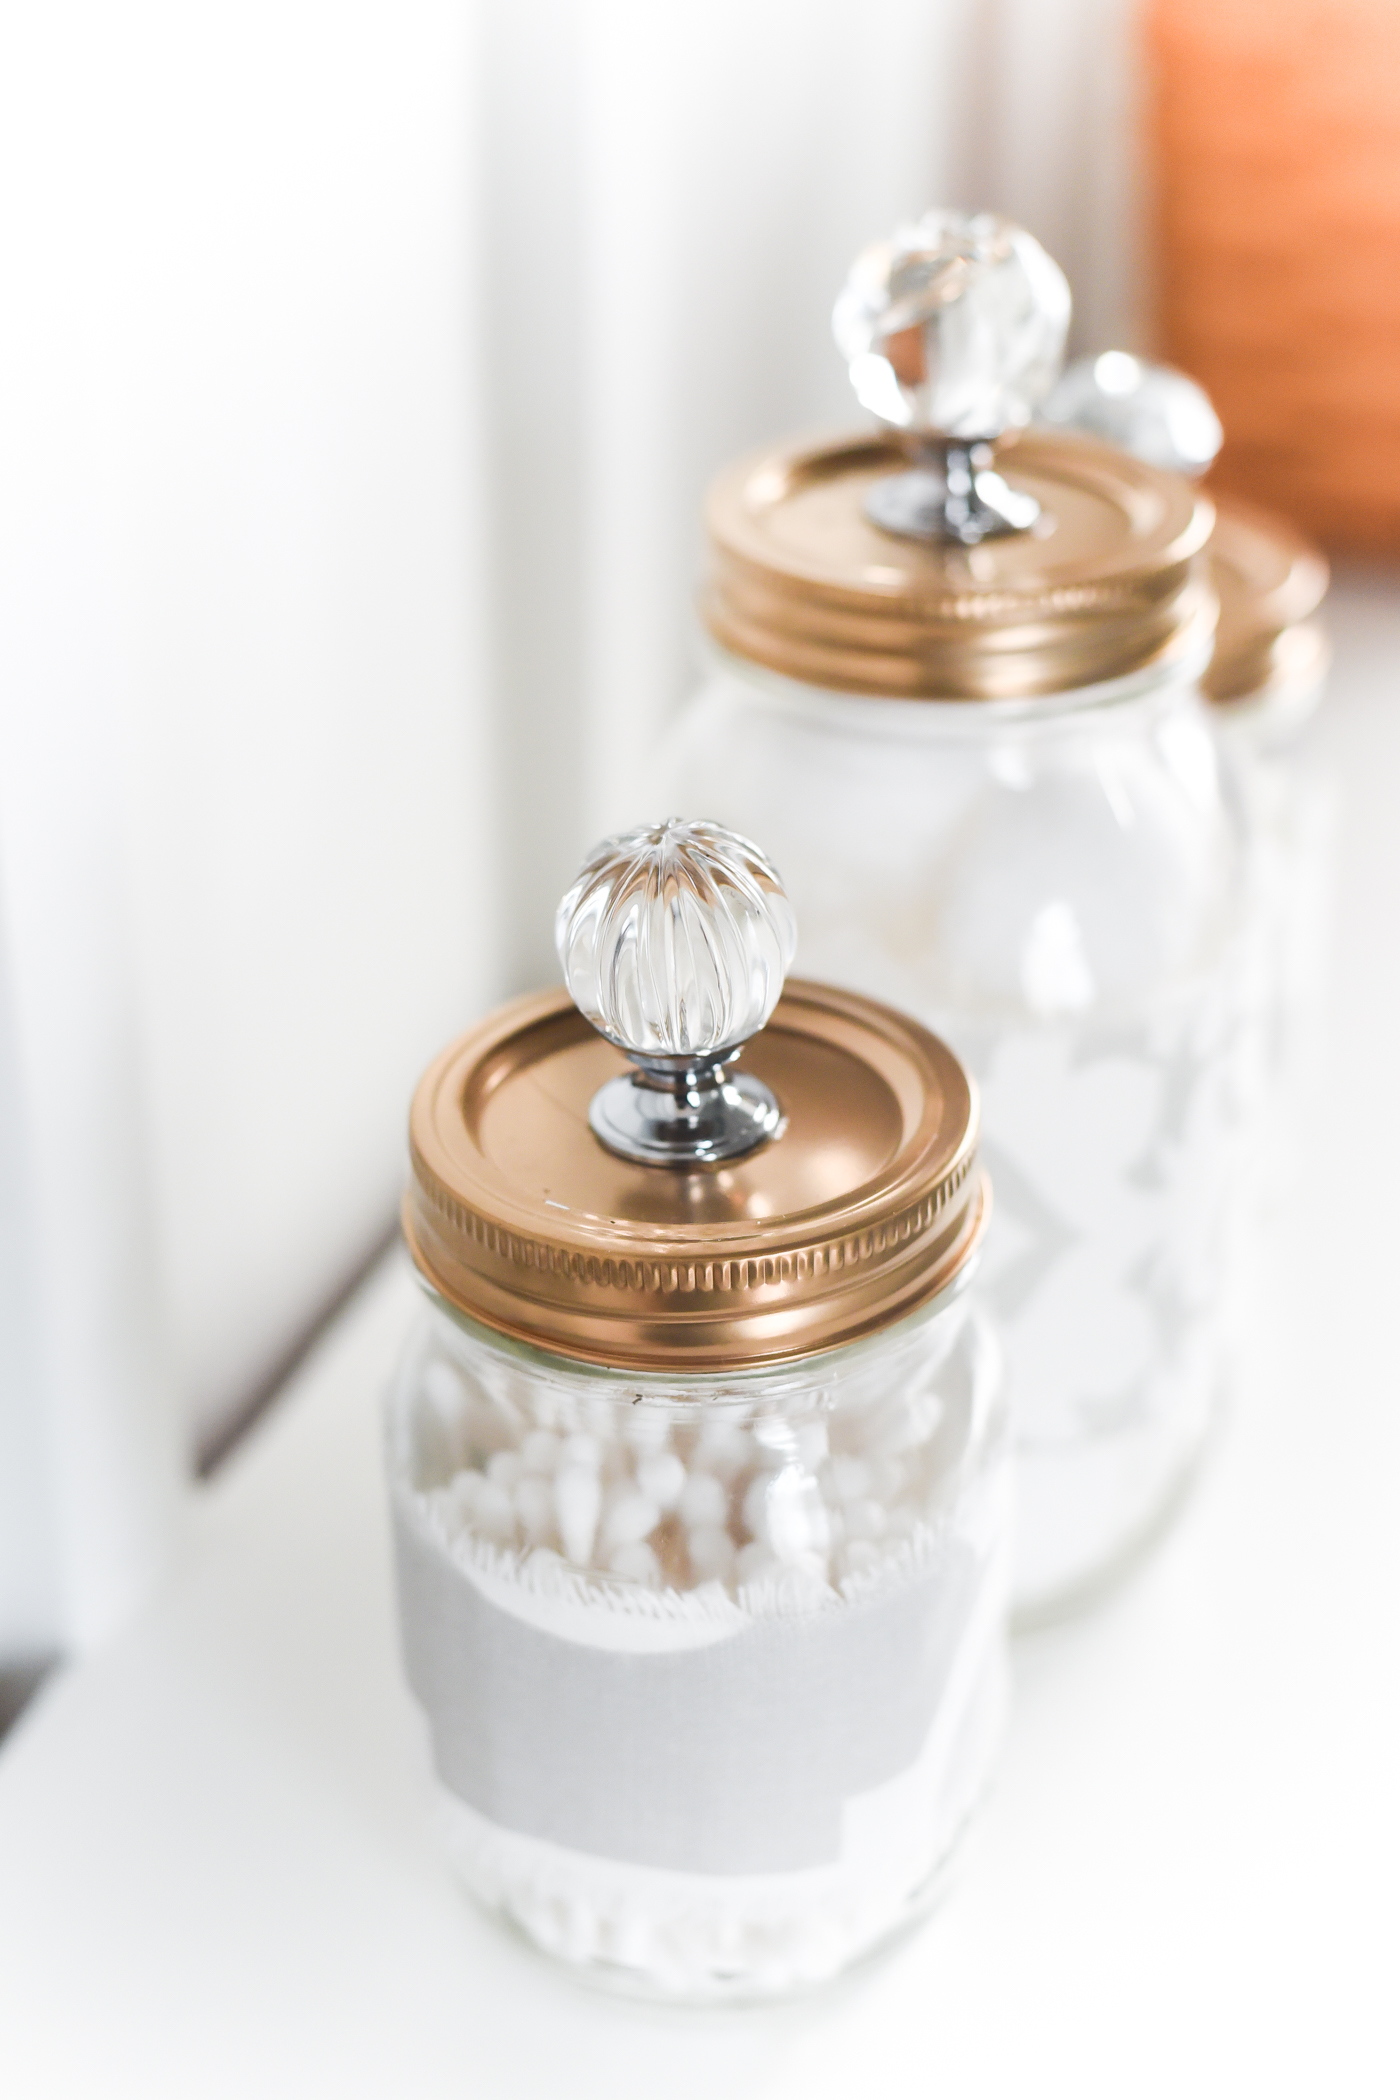 Mason Jar Gold Lids with Crystal Glass Knobs - Mason Jar Bathroom Storage